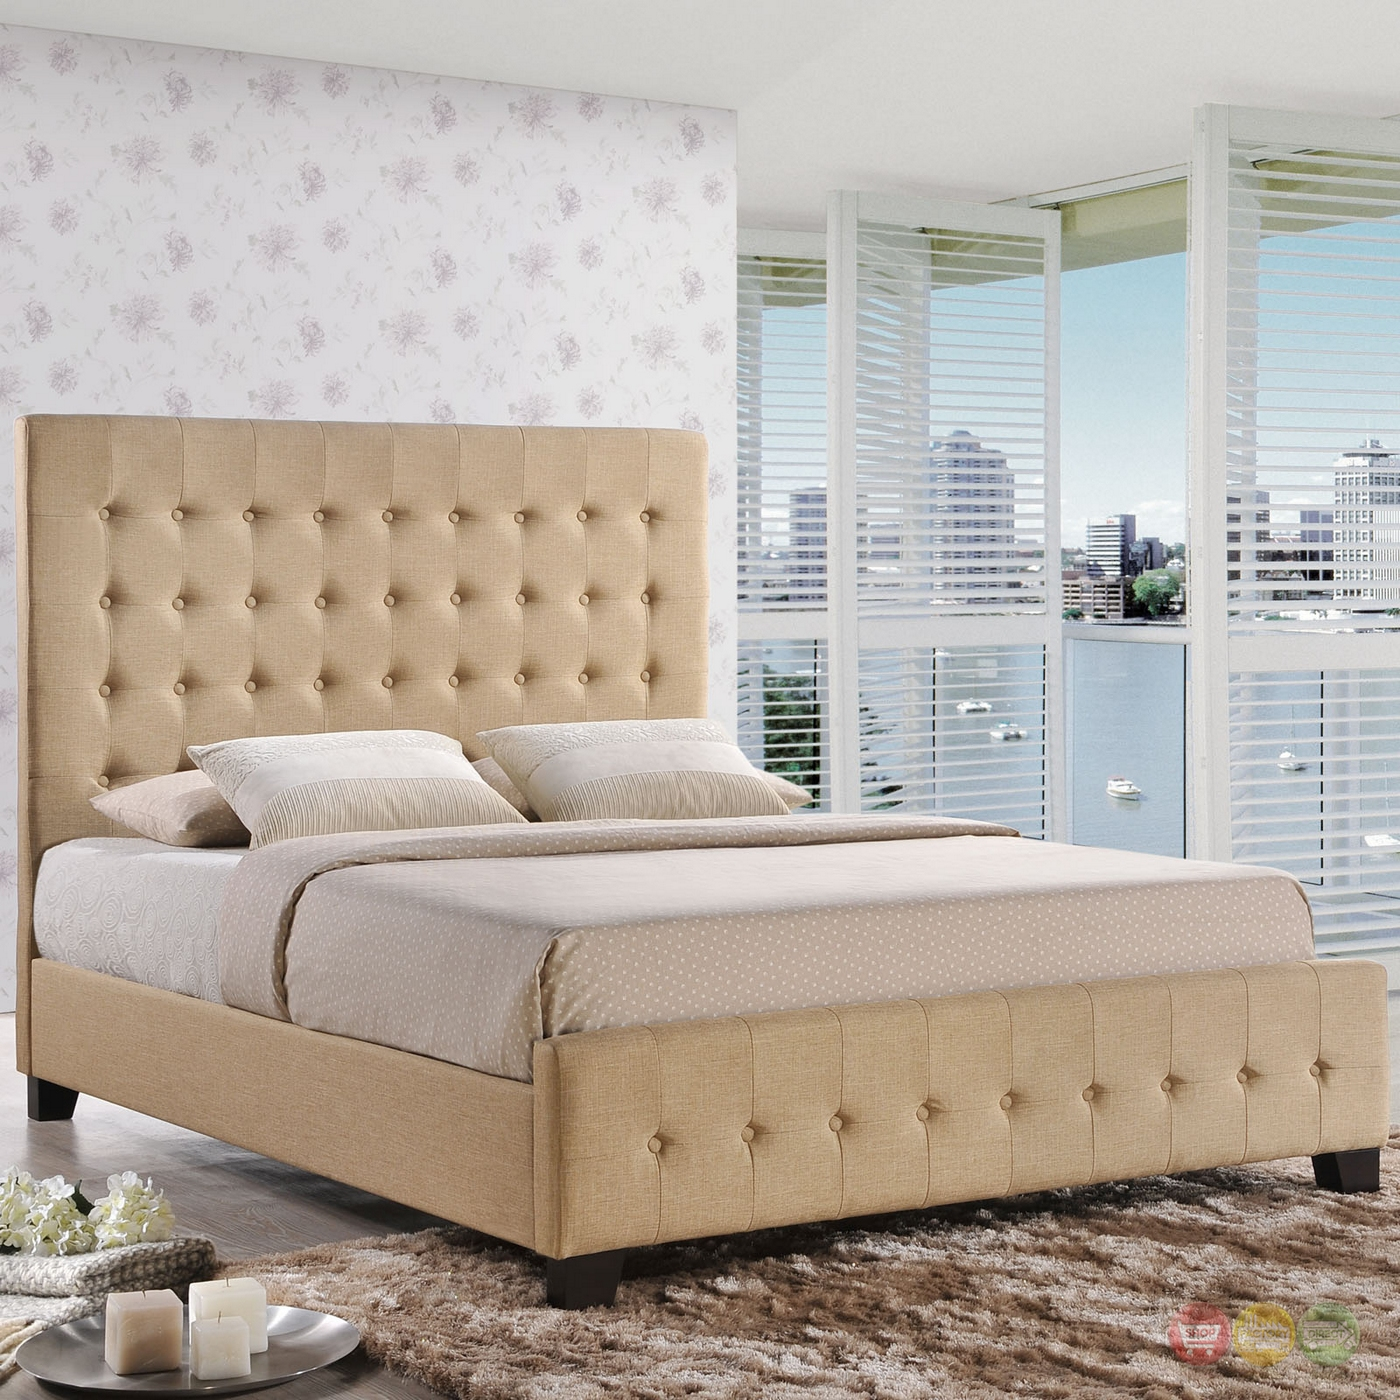 Skye Modern Upholstered Queen Platform Bed With Tall